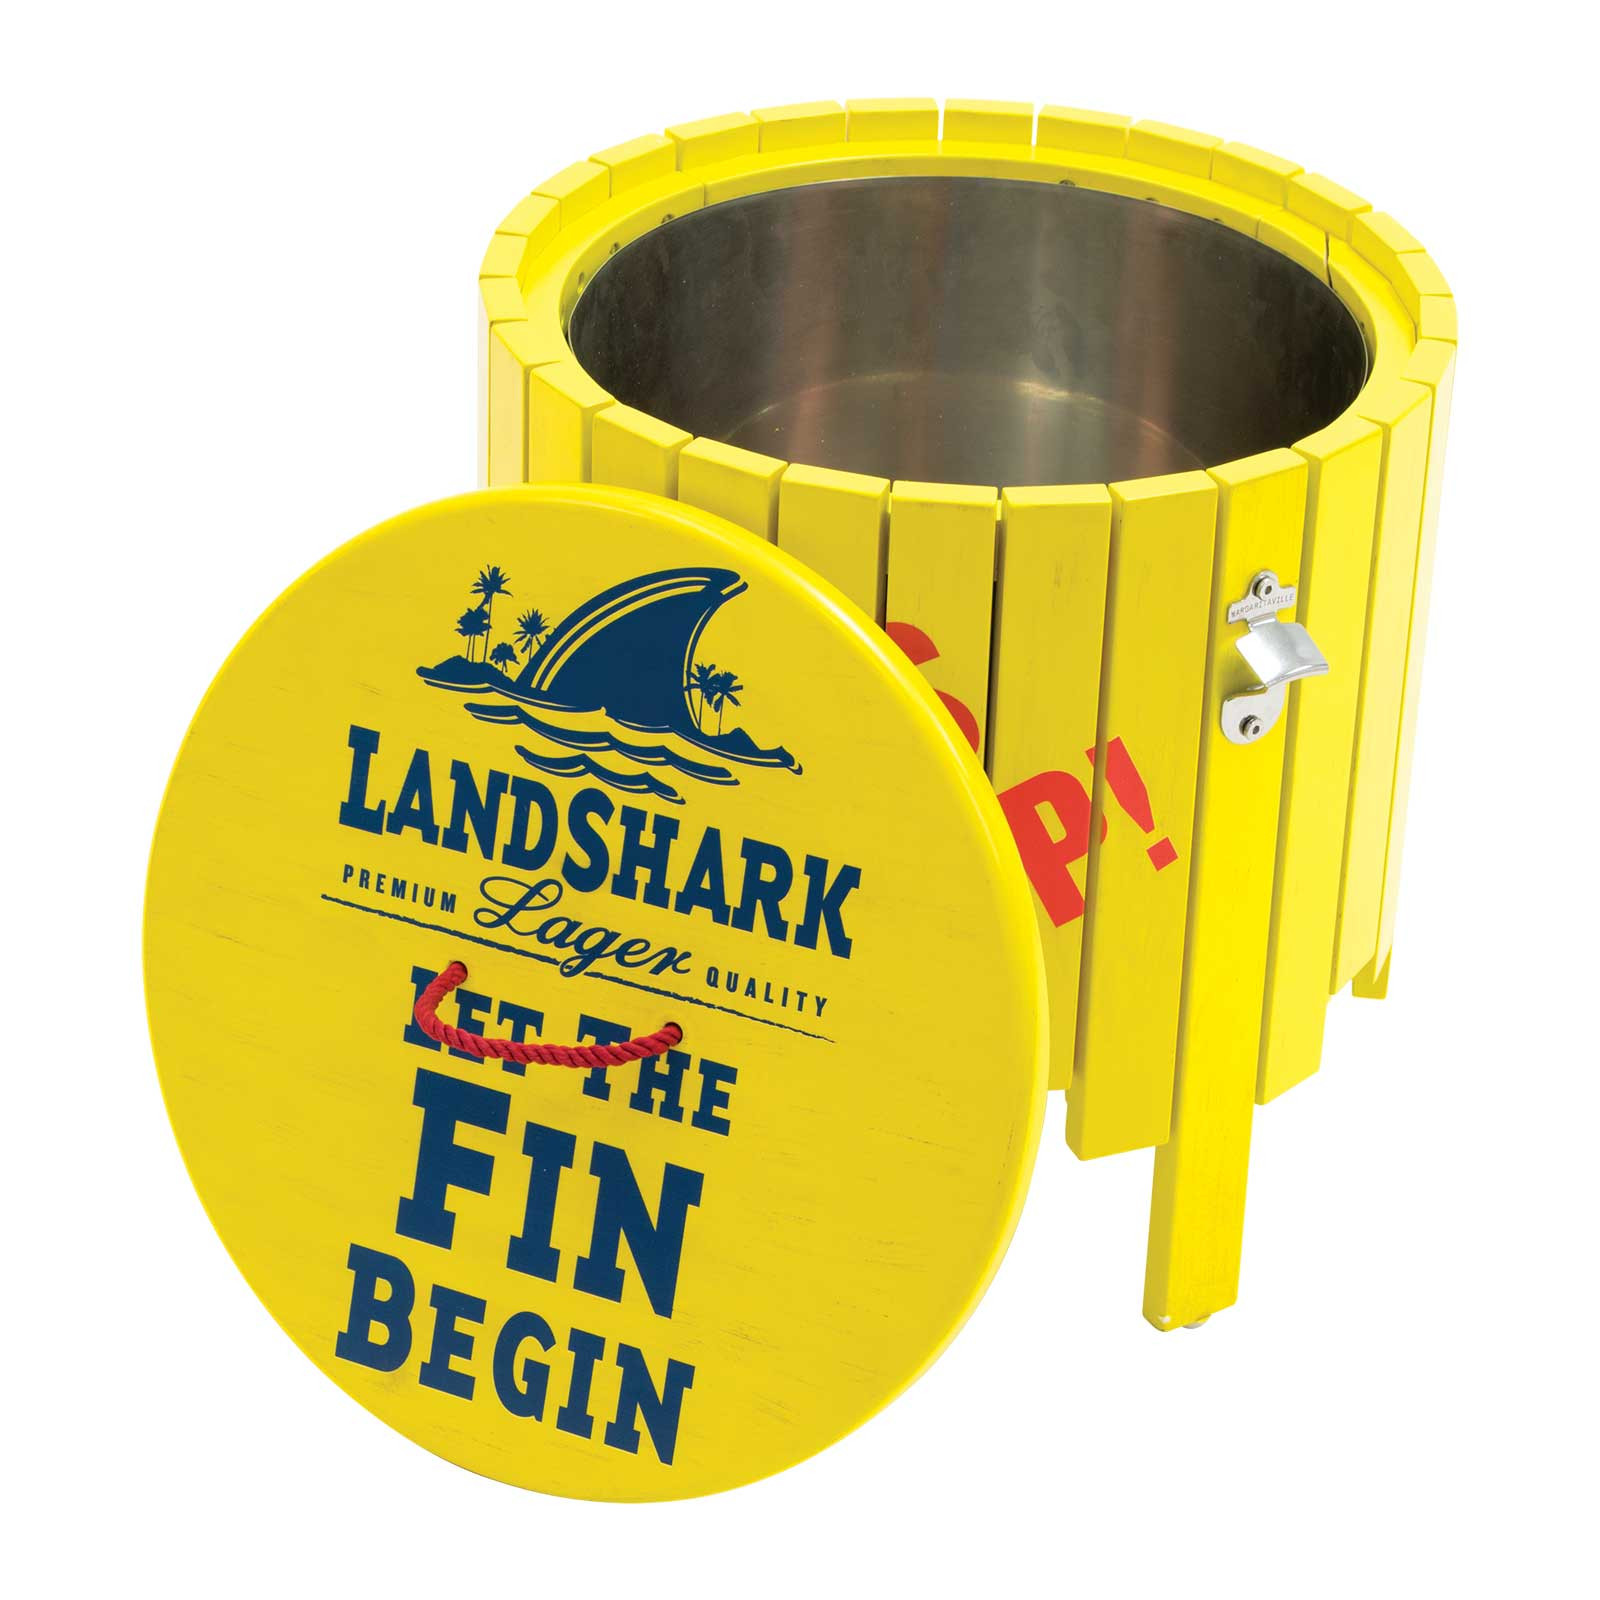 LS FINS UP BEVERAGE COOLER